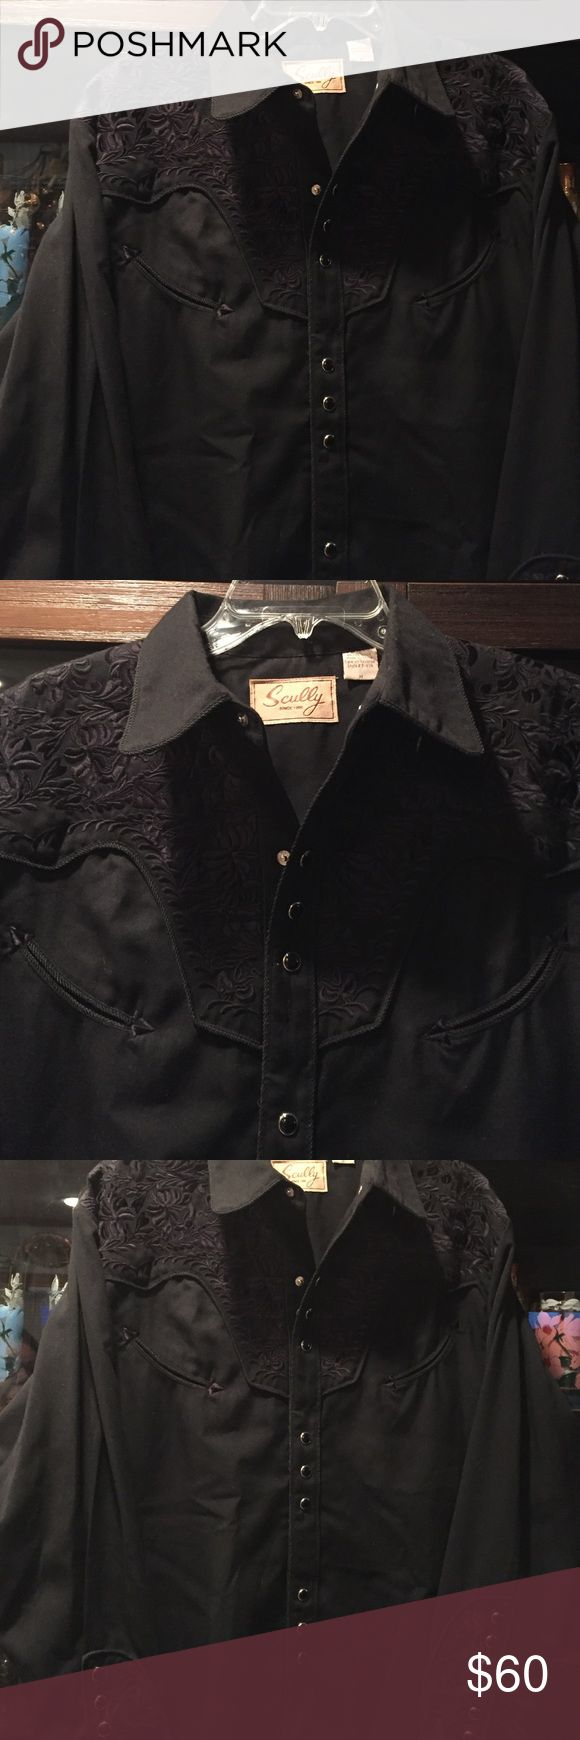 SCULLY men's shirt SCULLY medium black western shirt originally  $130 beautiful perfect condition details on front back & sleaves get his sexy back!💋bought at San Antonio store  in Texas. Black stone snap buttons scully Shirts Dress Shirts